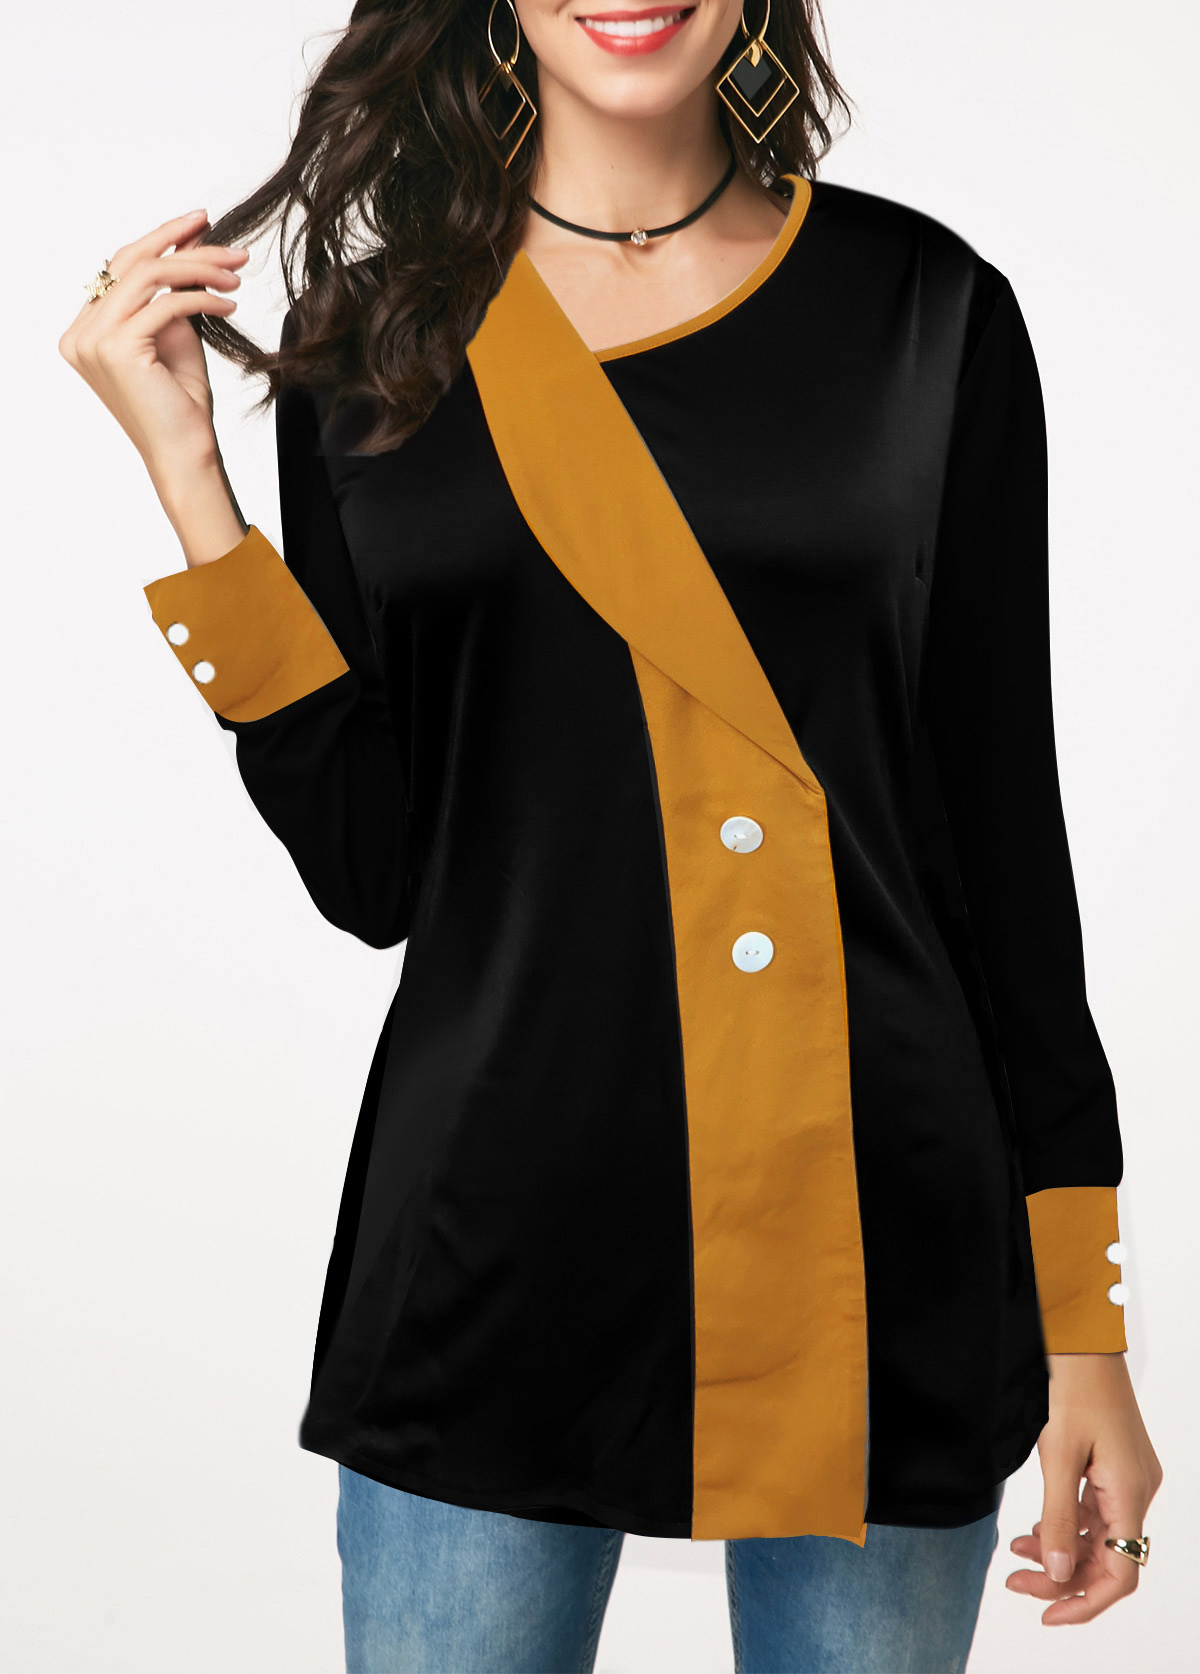 Asymmetric Neckline Button Detail Contrast Panel T Shirt